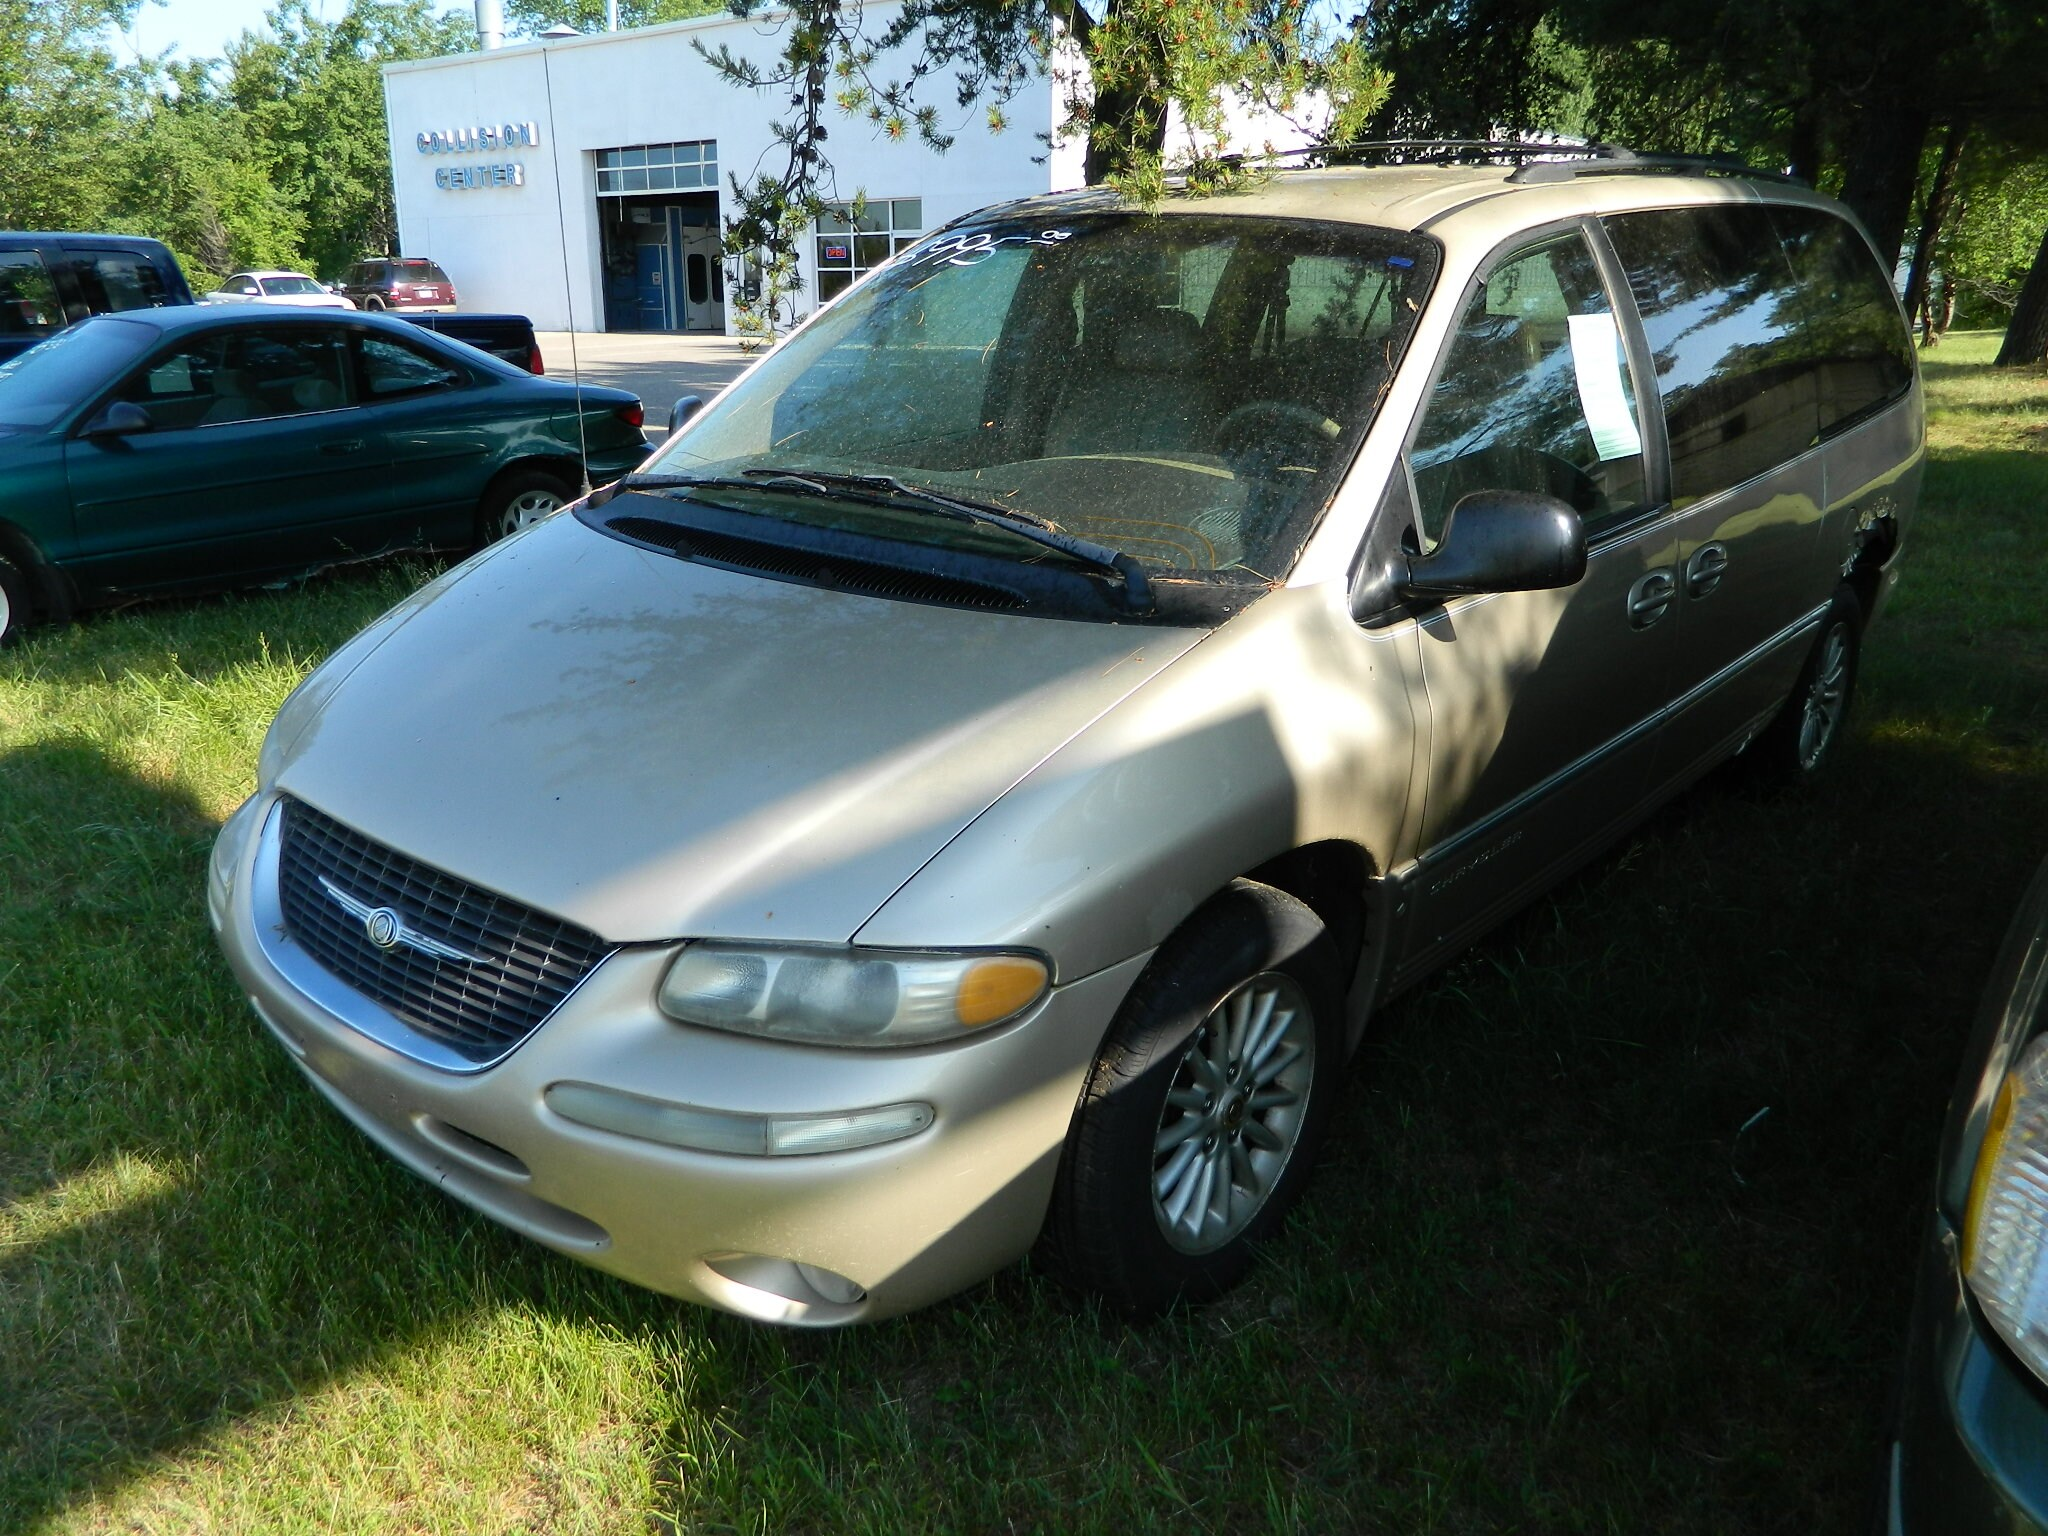 2000 Chrysler Town & Country LXi Van Passenger Van